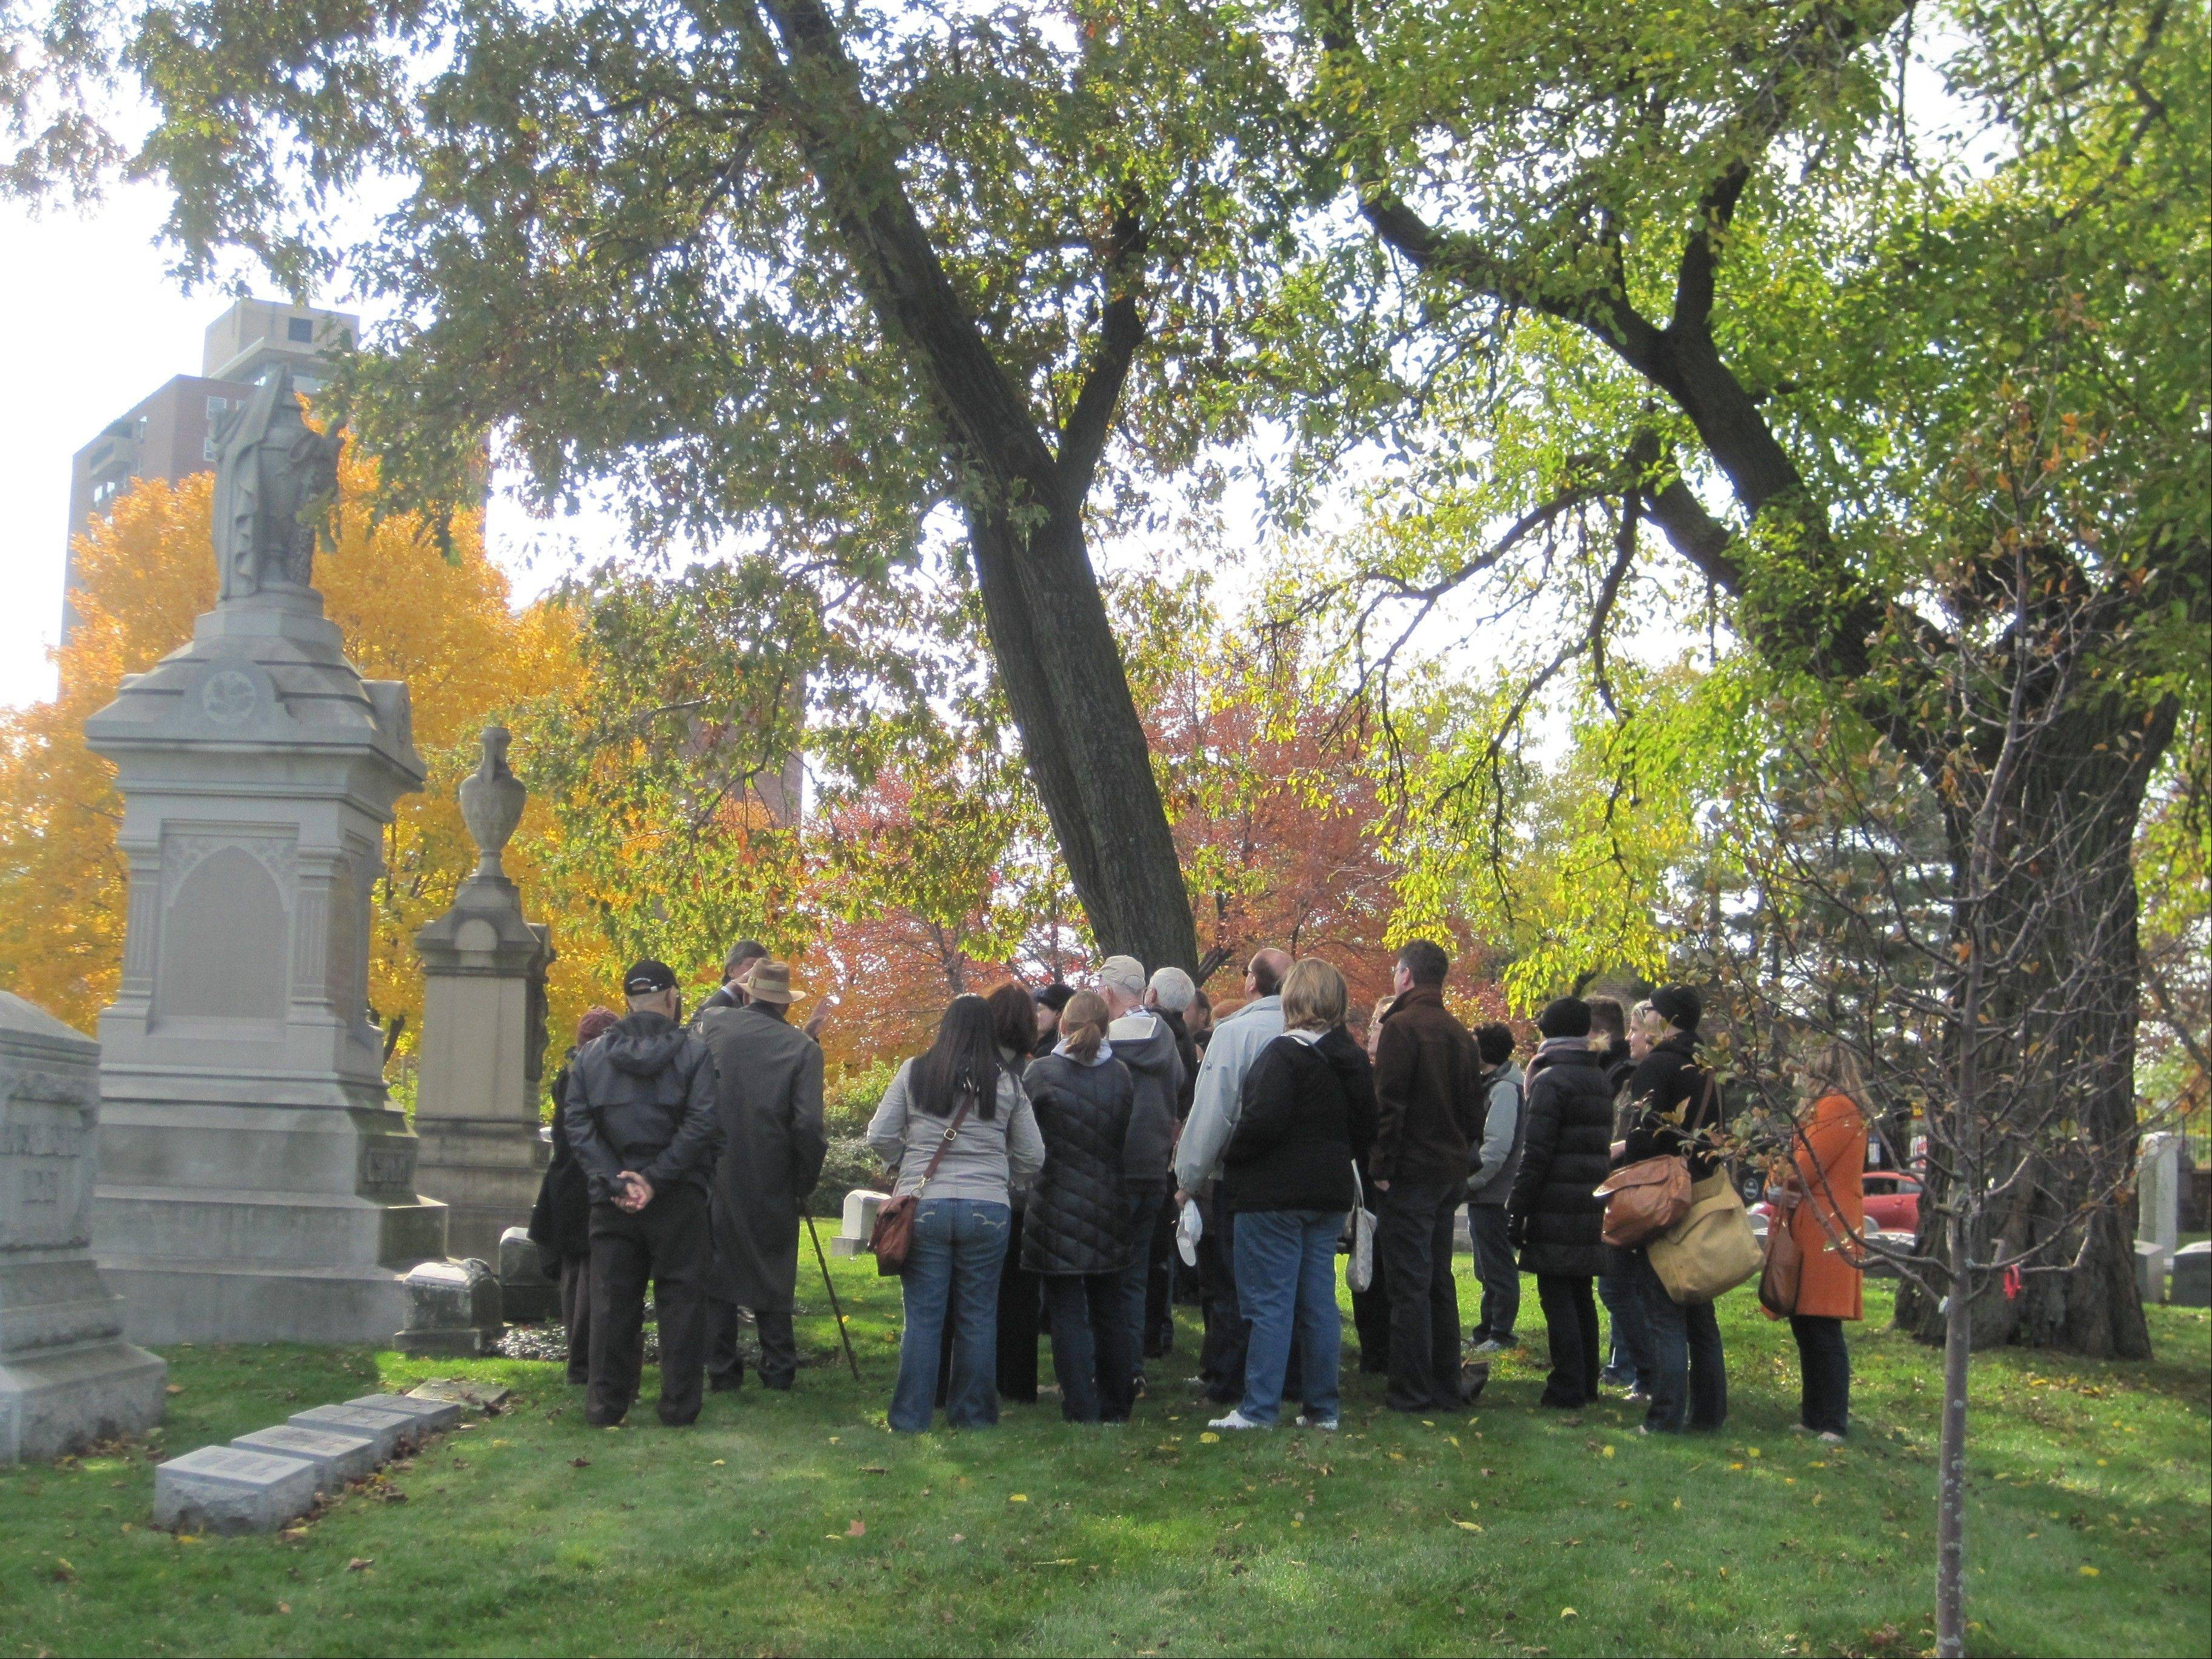 Take a decidedly spooky tour of Chicago's Graceland Cemetery this October.